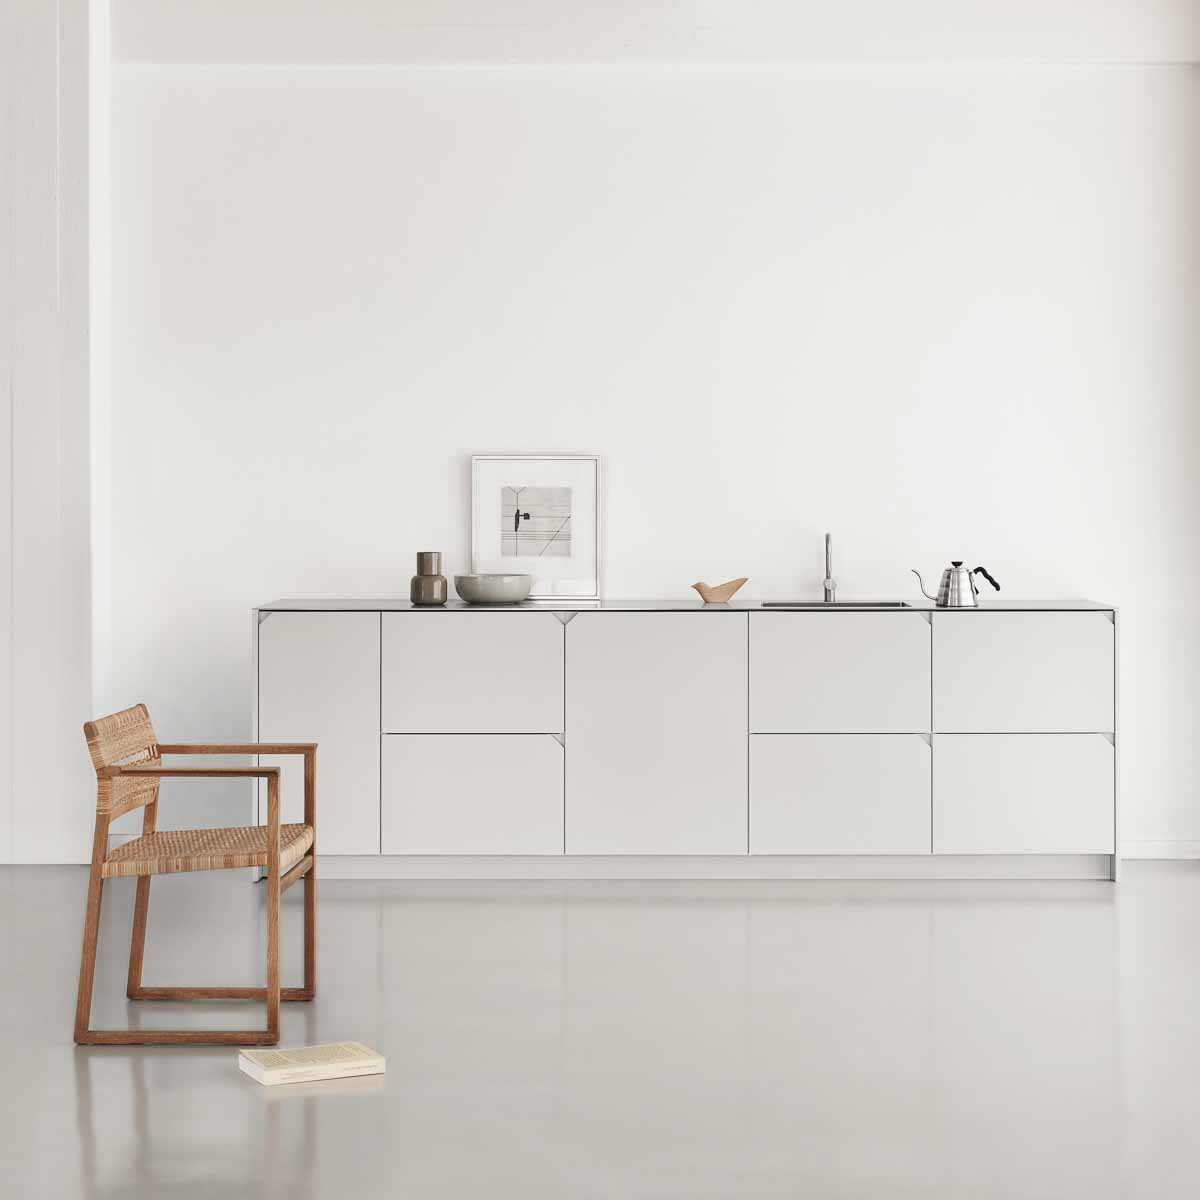 Alternative Ikea Küchenfronten Kitchen Fronts By Reform Out Of Copenhagen - Berlin